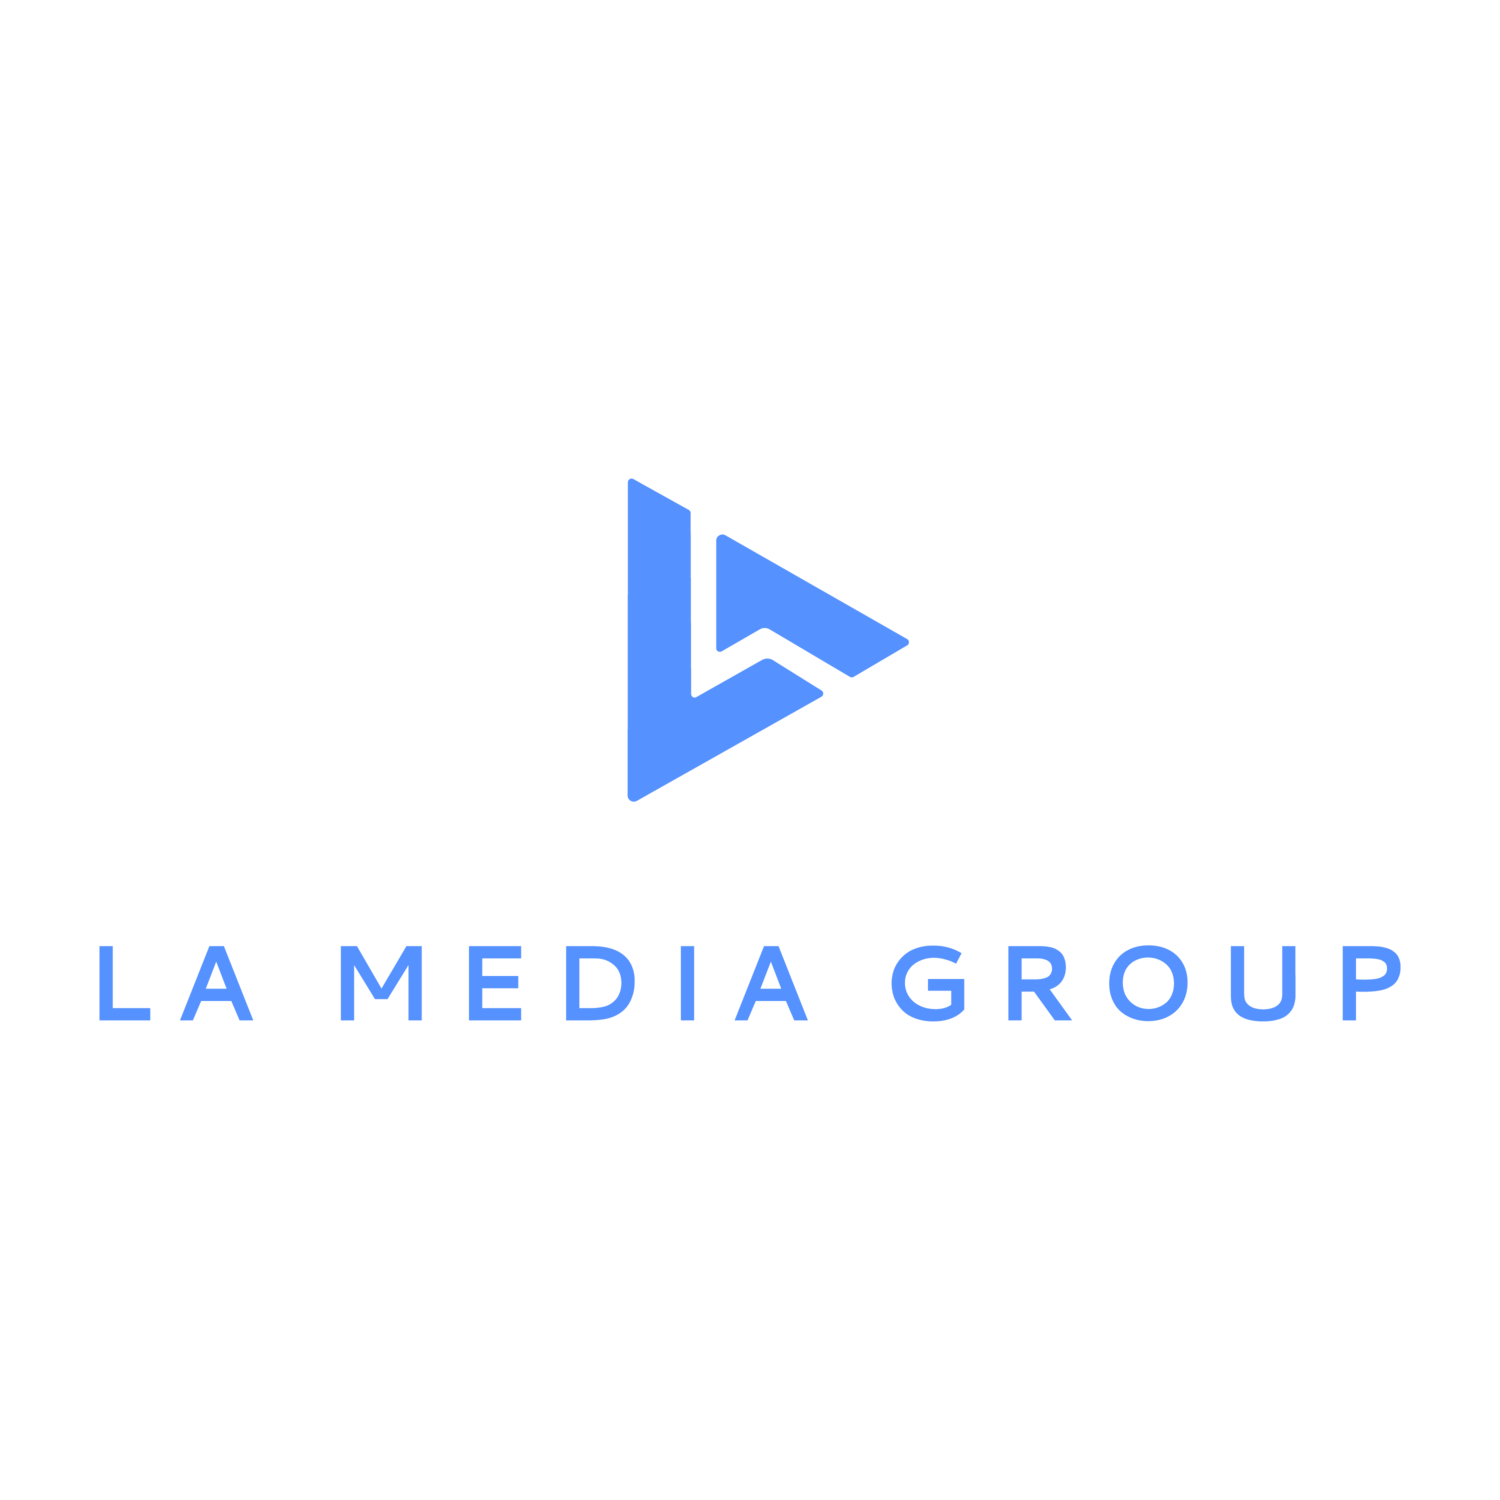 LA Media Group | Digital Agency | Social Media Management